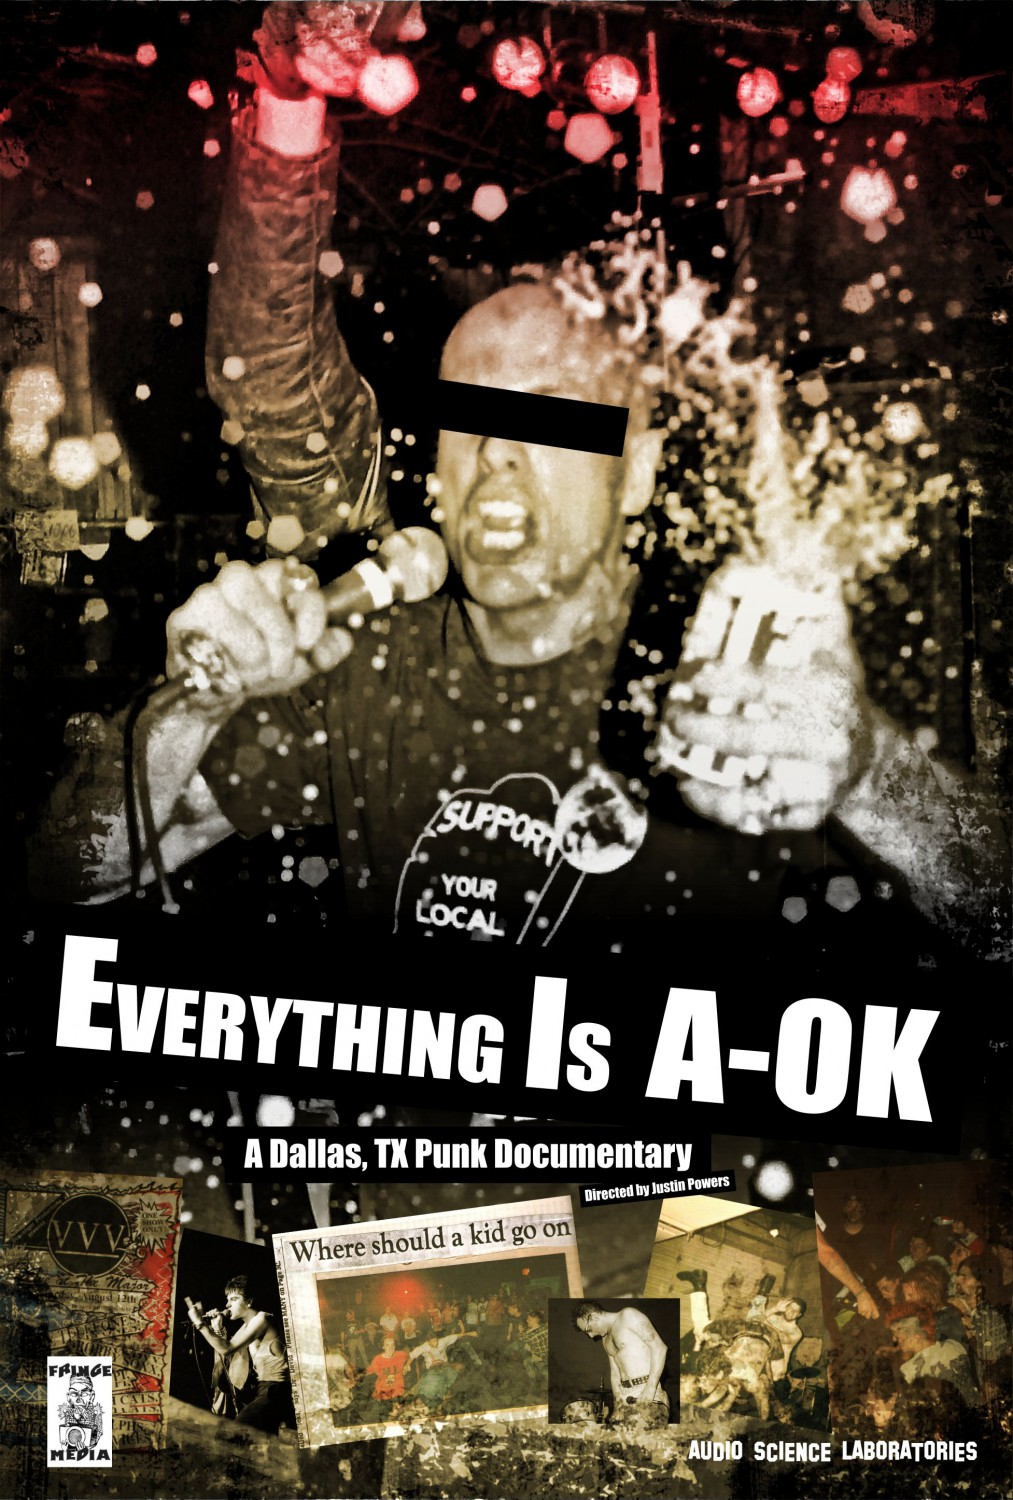 Productionmark-Services-Film-Poster-Design-Feature-Film-everything-is-aok